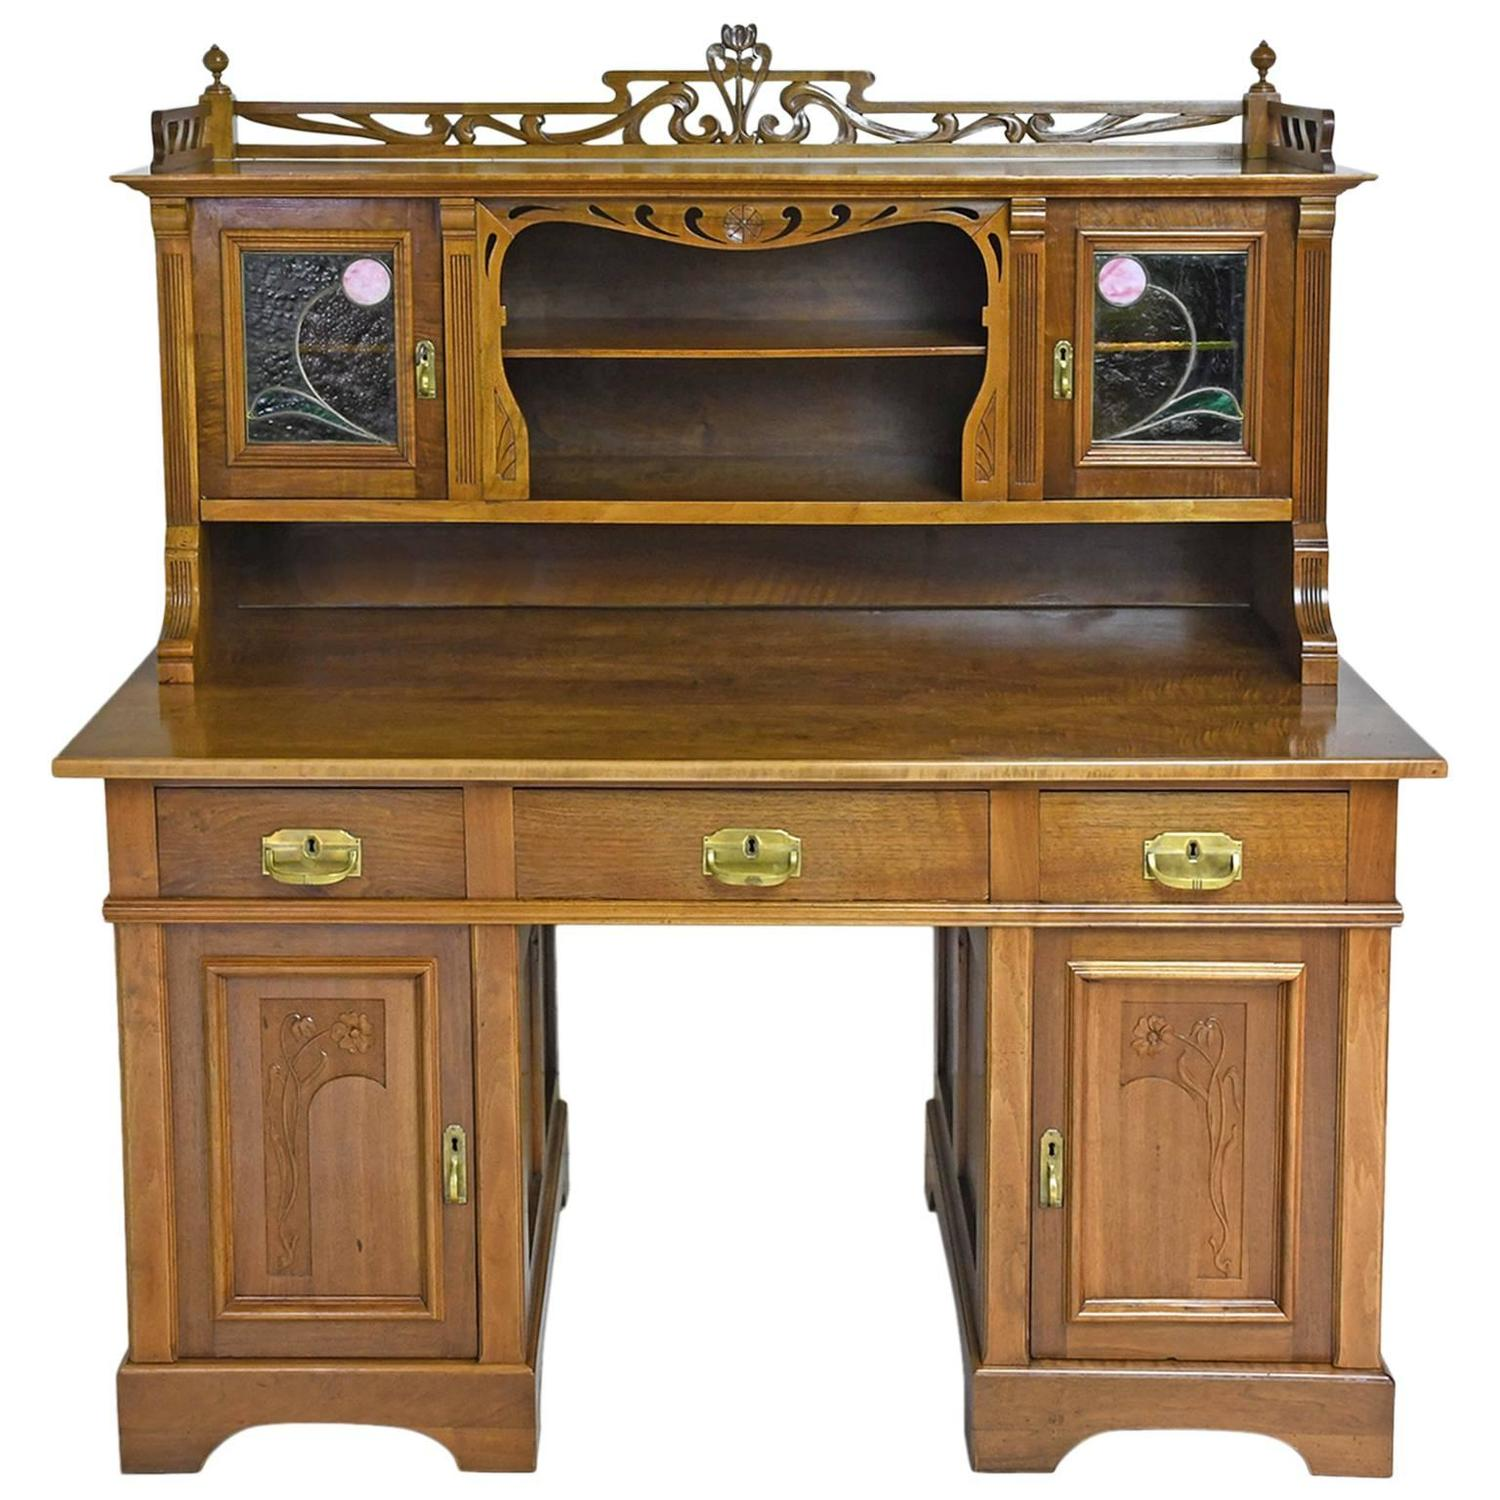 Art Nouveau Walnut Pedestal Desk With Upper Cabinet And Stained Glass C 1900 For At 1stdibs